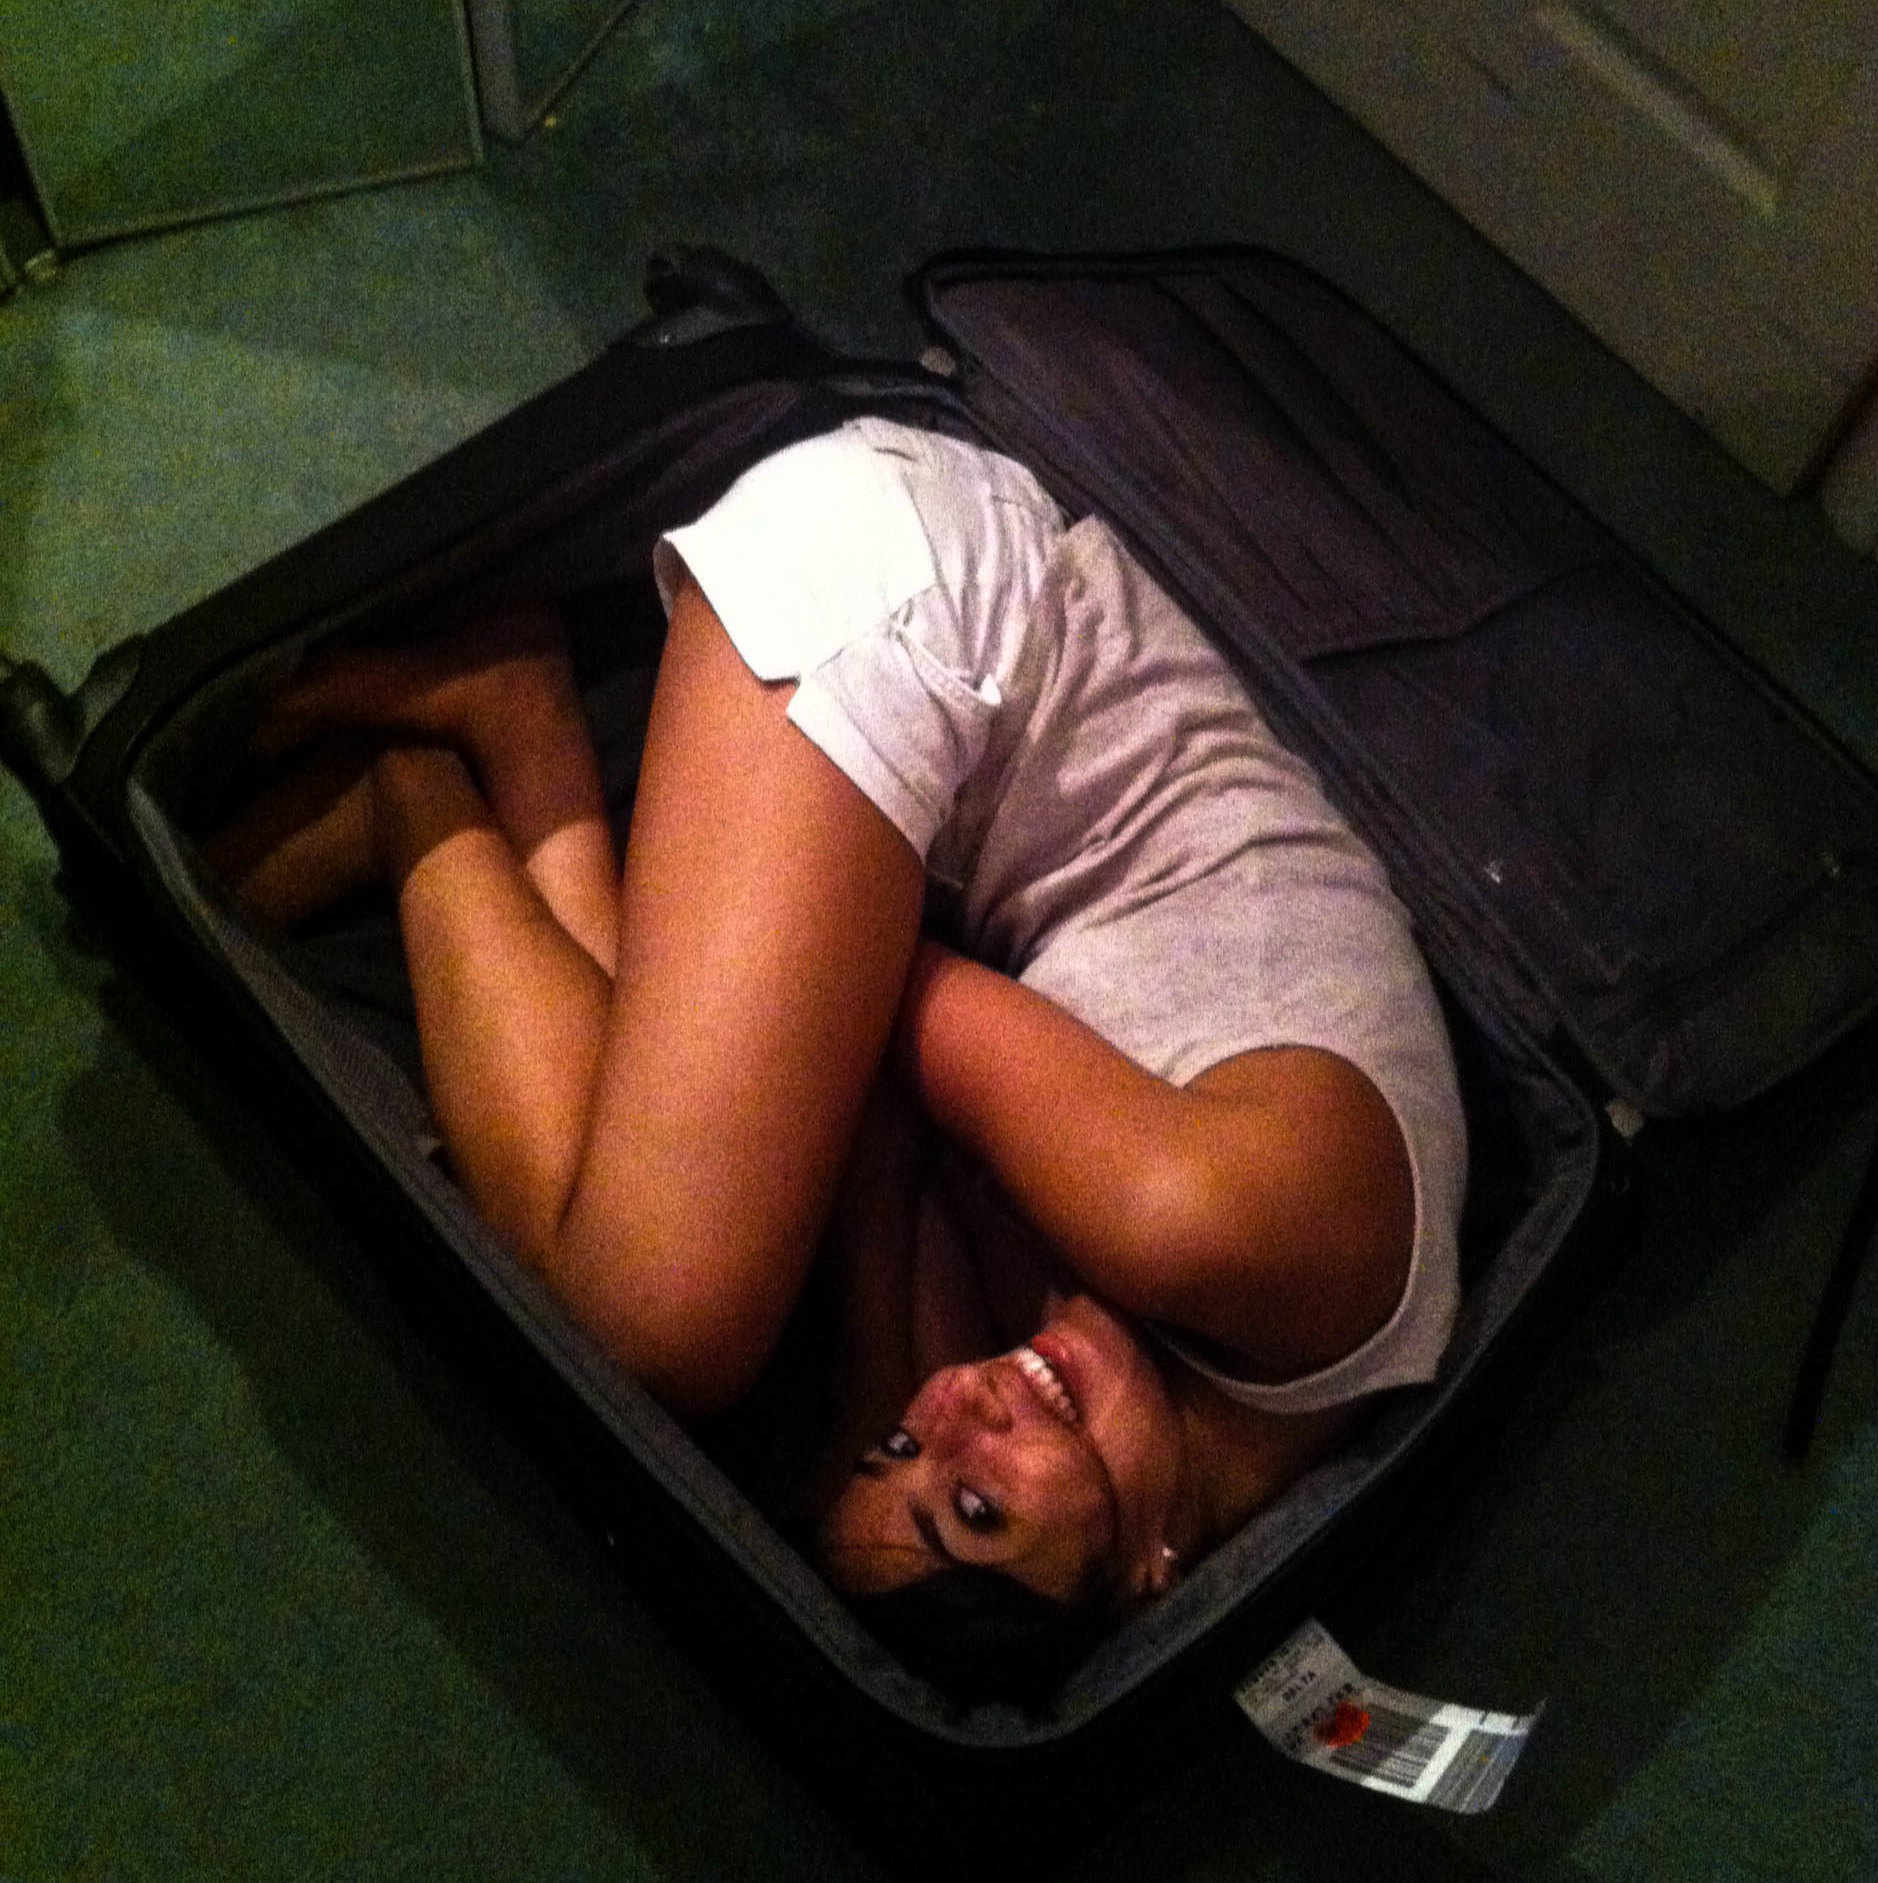 CheckedLuggage - Copy